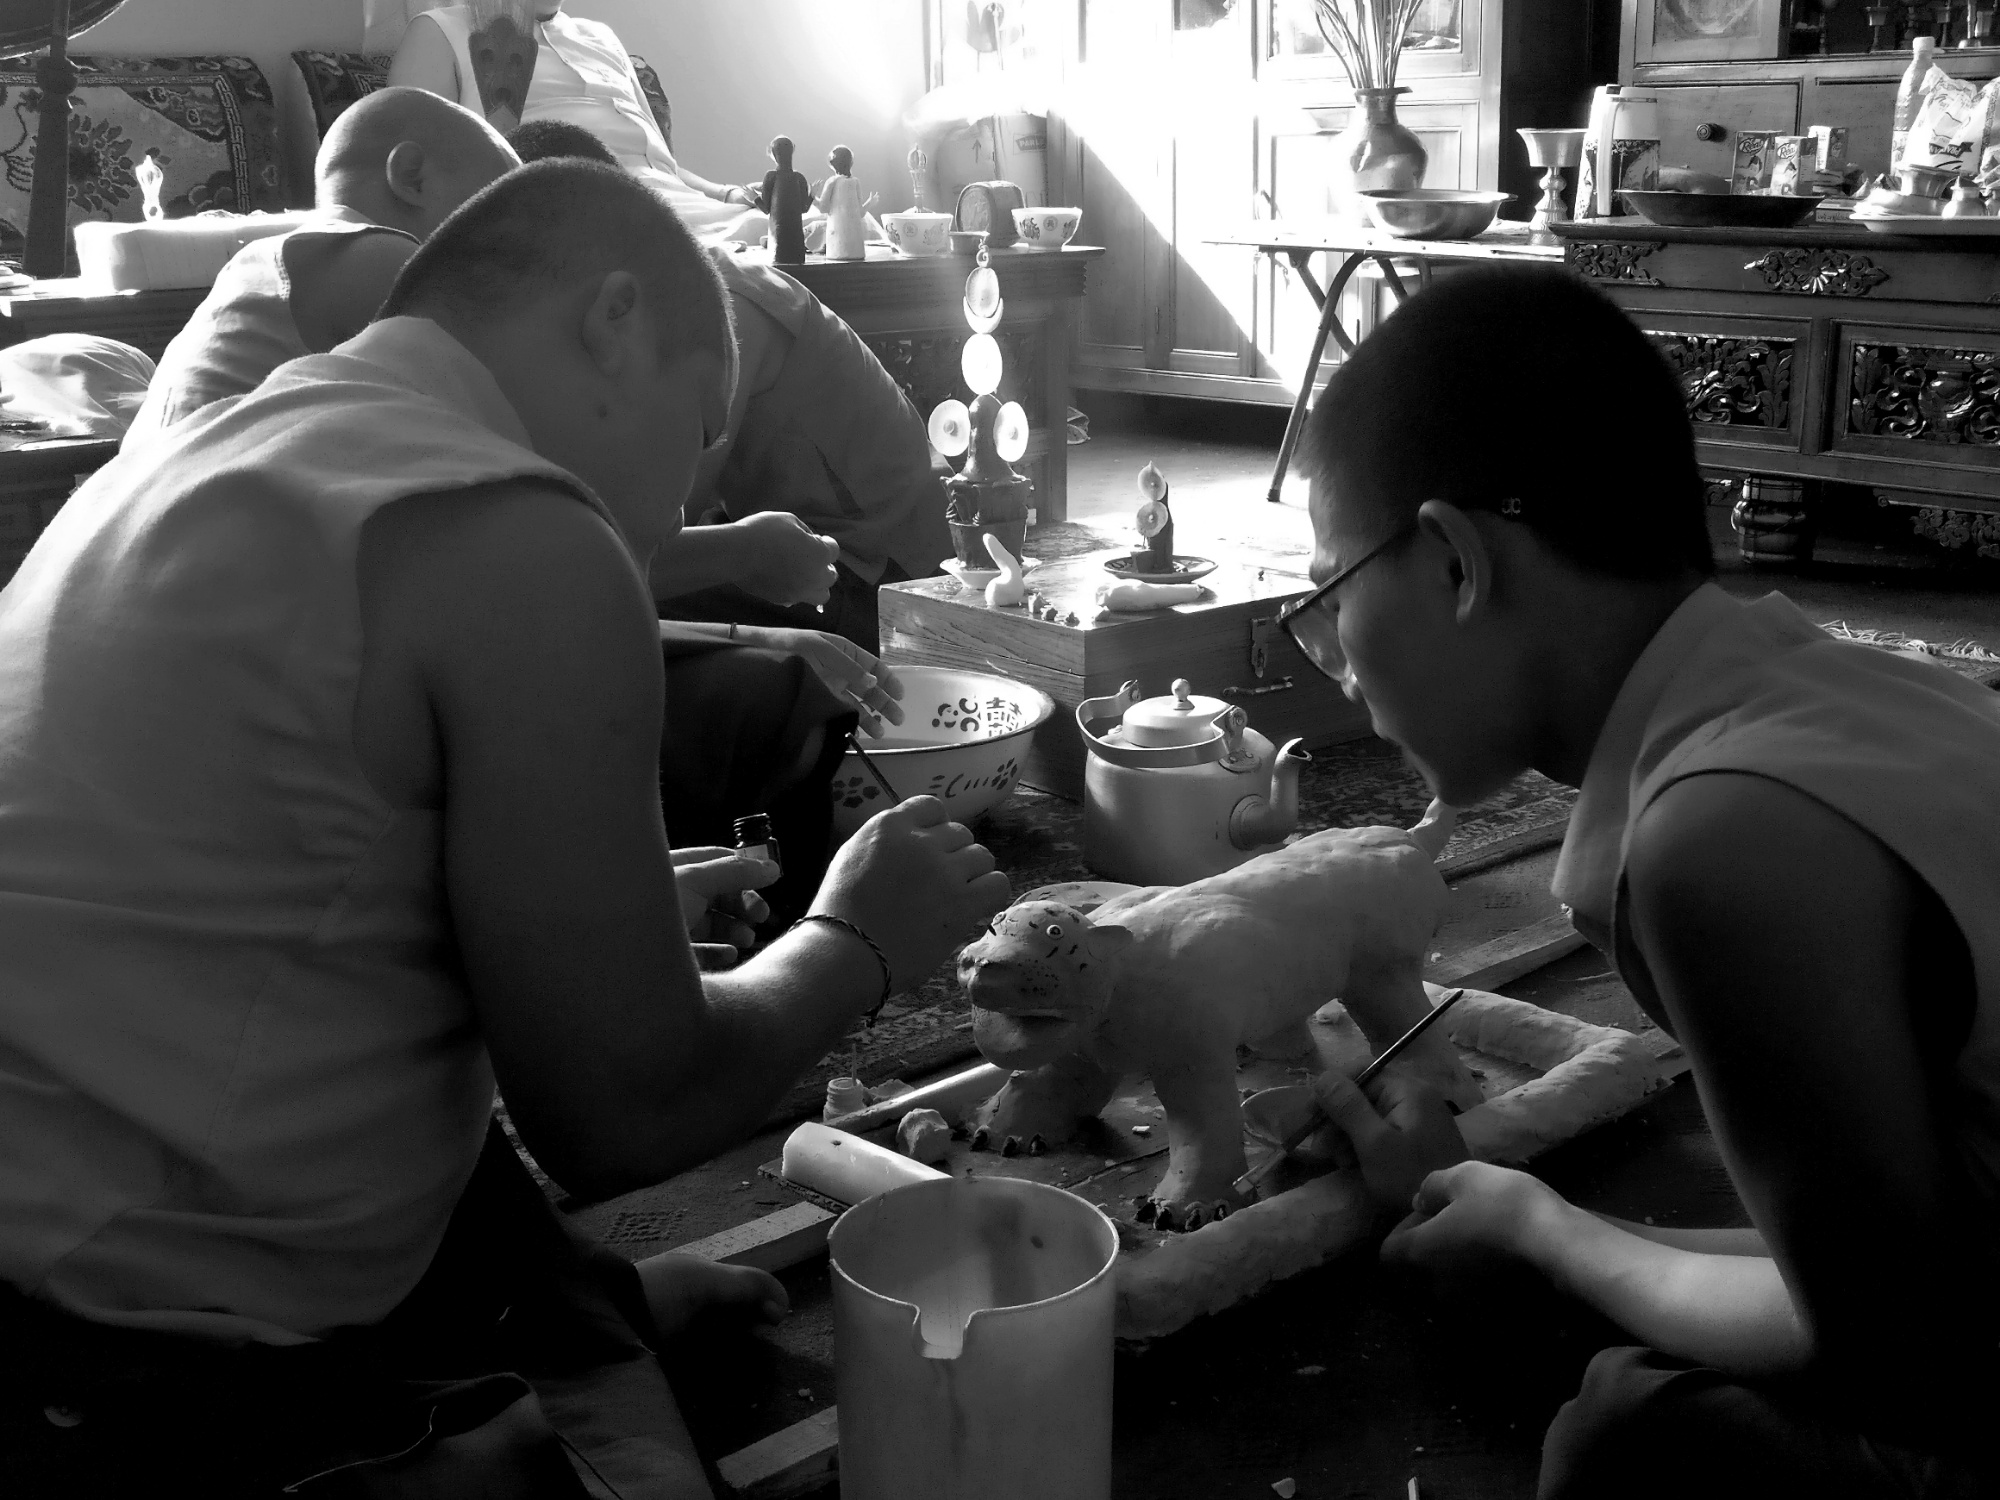 The senior lama (monk) teaching his student the art of painting idols used for rituals.